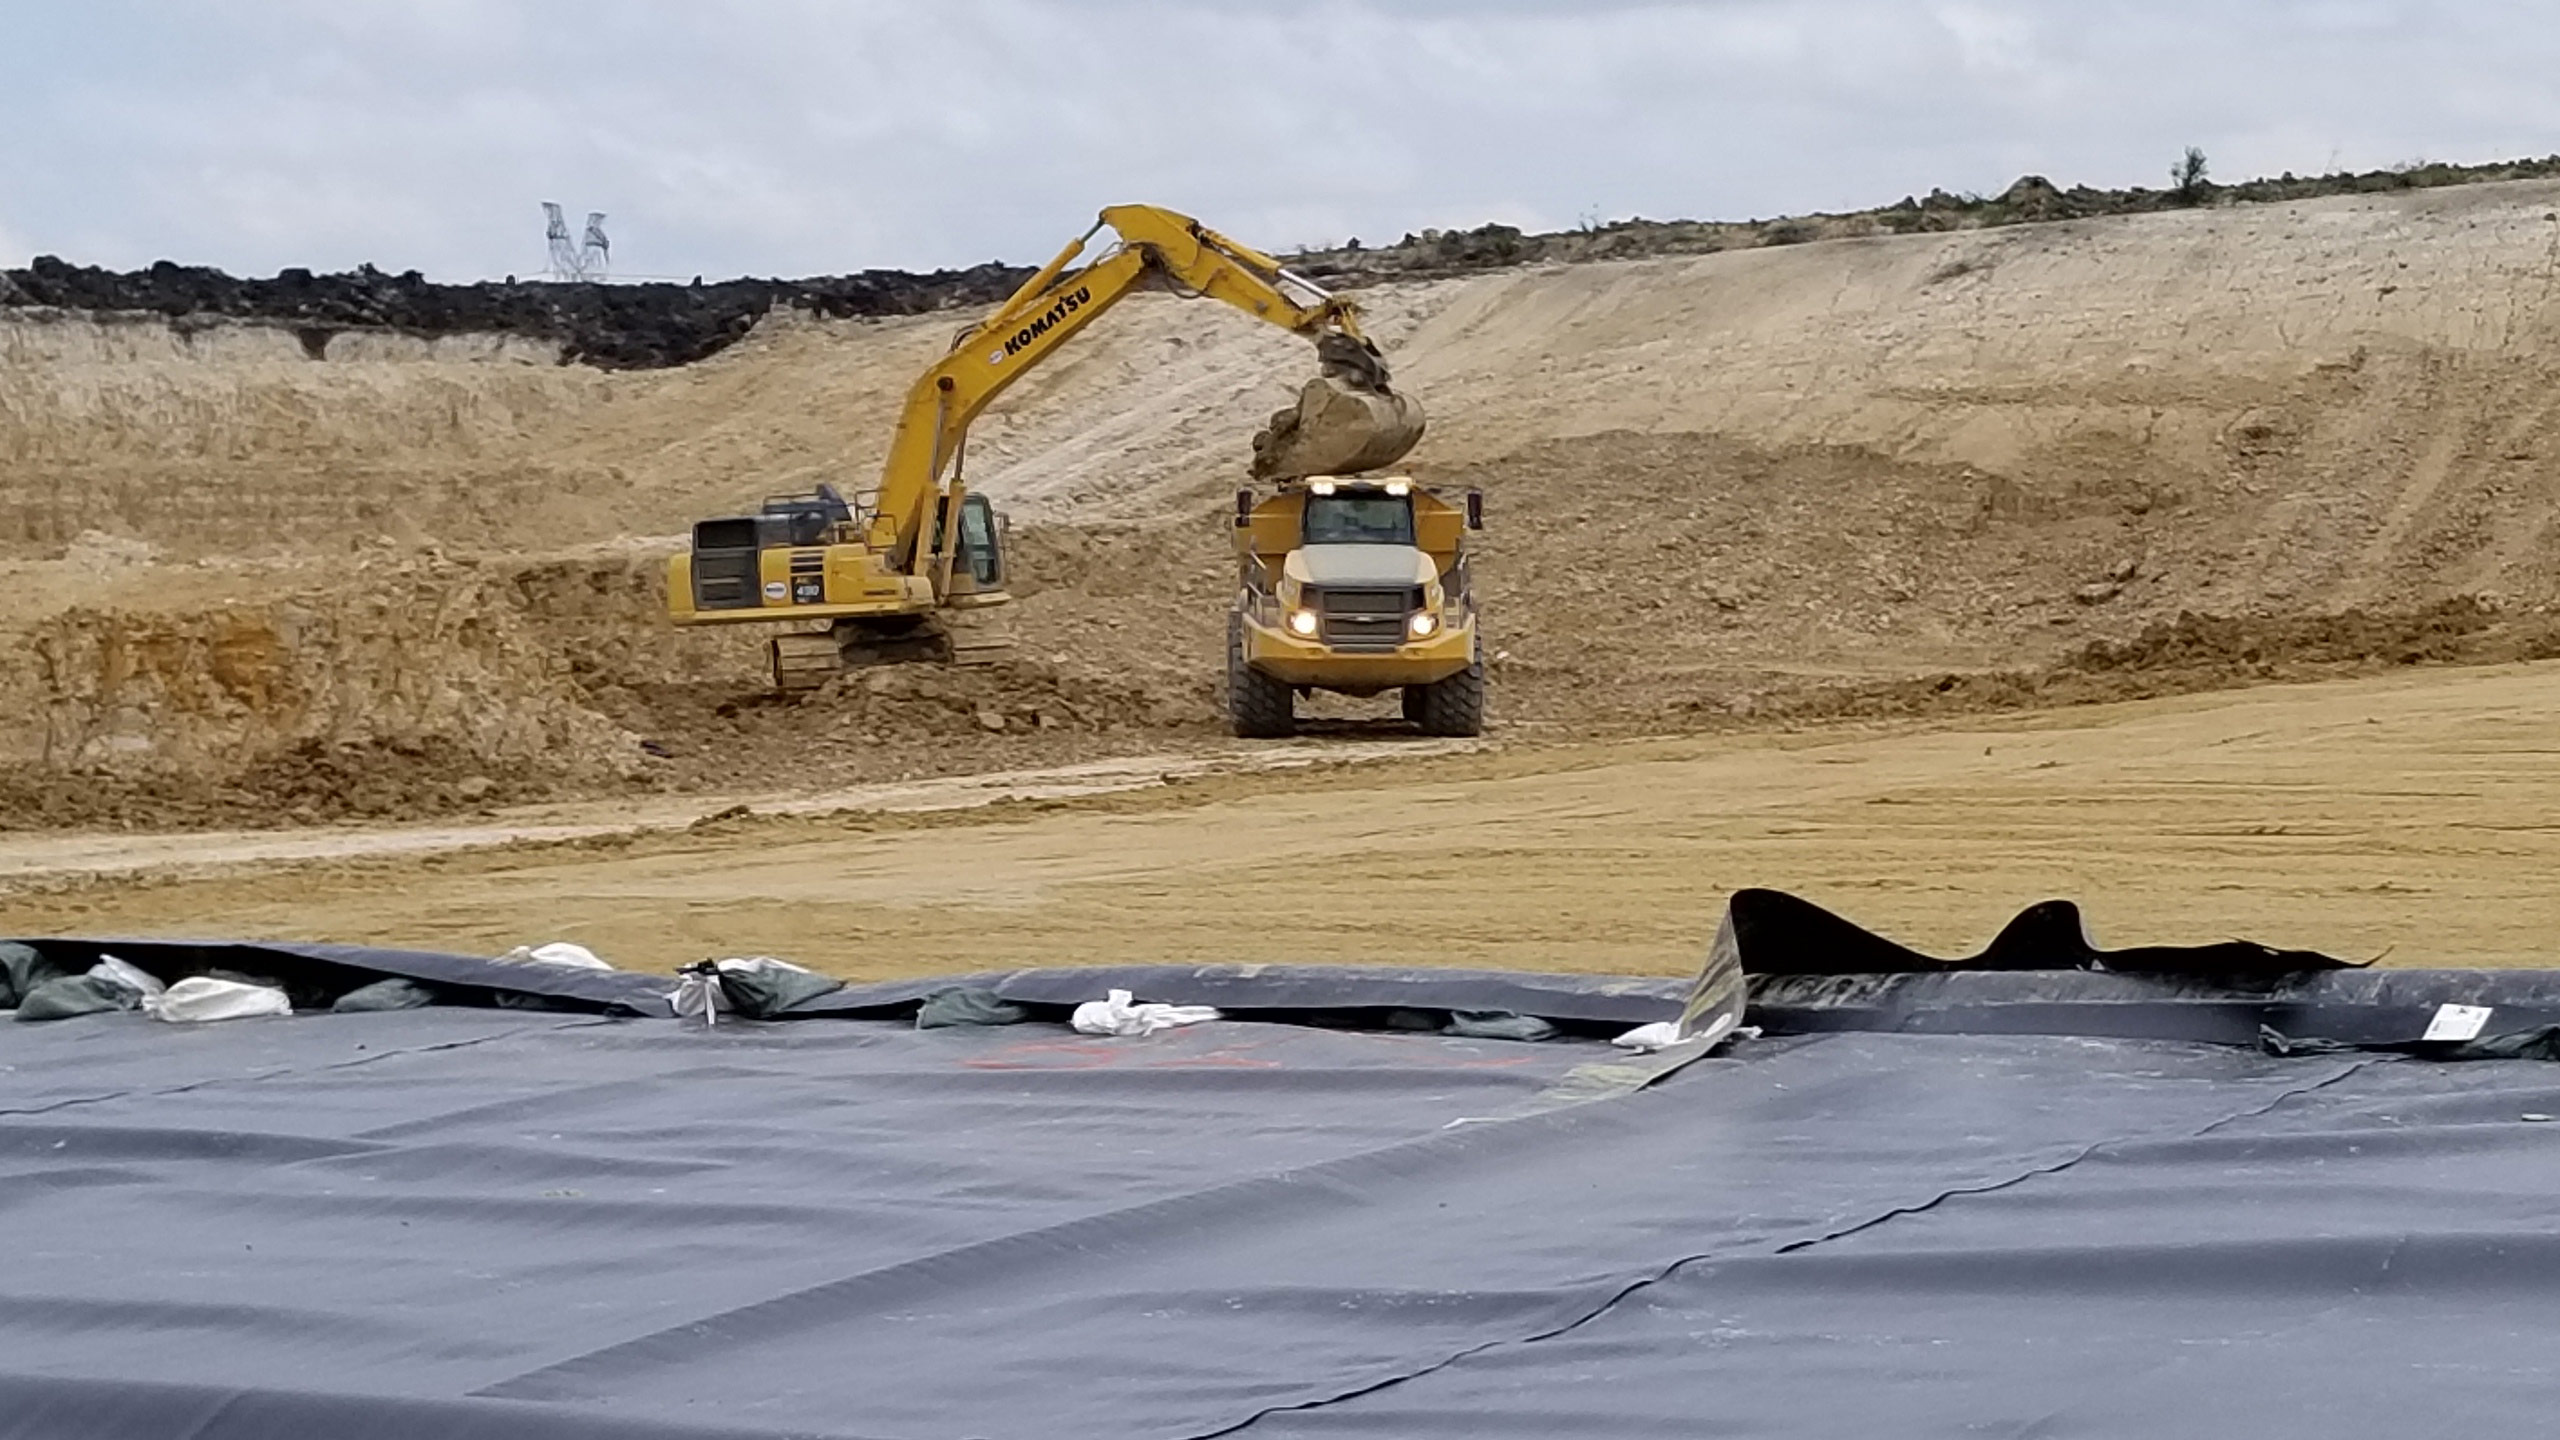 Crews work quickly using an excavator to clear out more dirt from the base of the new landfill section and place the dirt onto a large yellow dump truck.